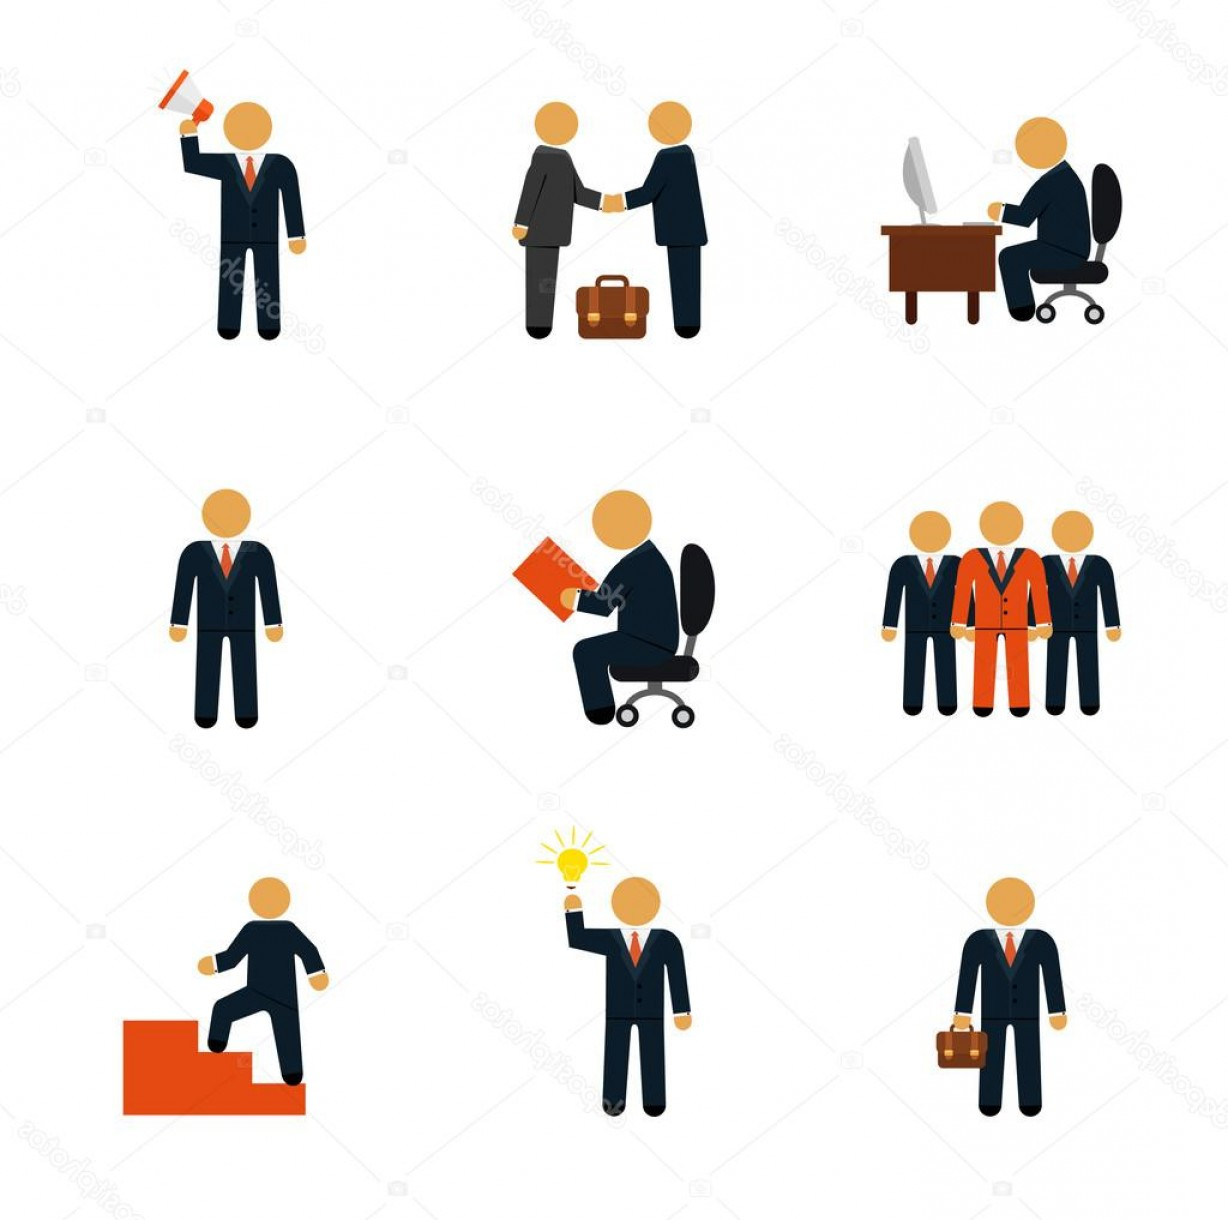 Free Vector Business People Icon: Stock Illustration Stock Vector Business People Flat